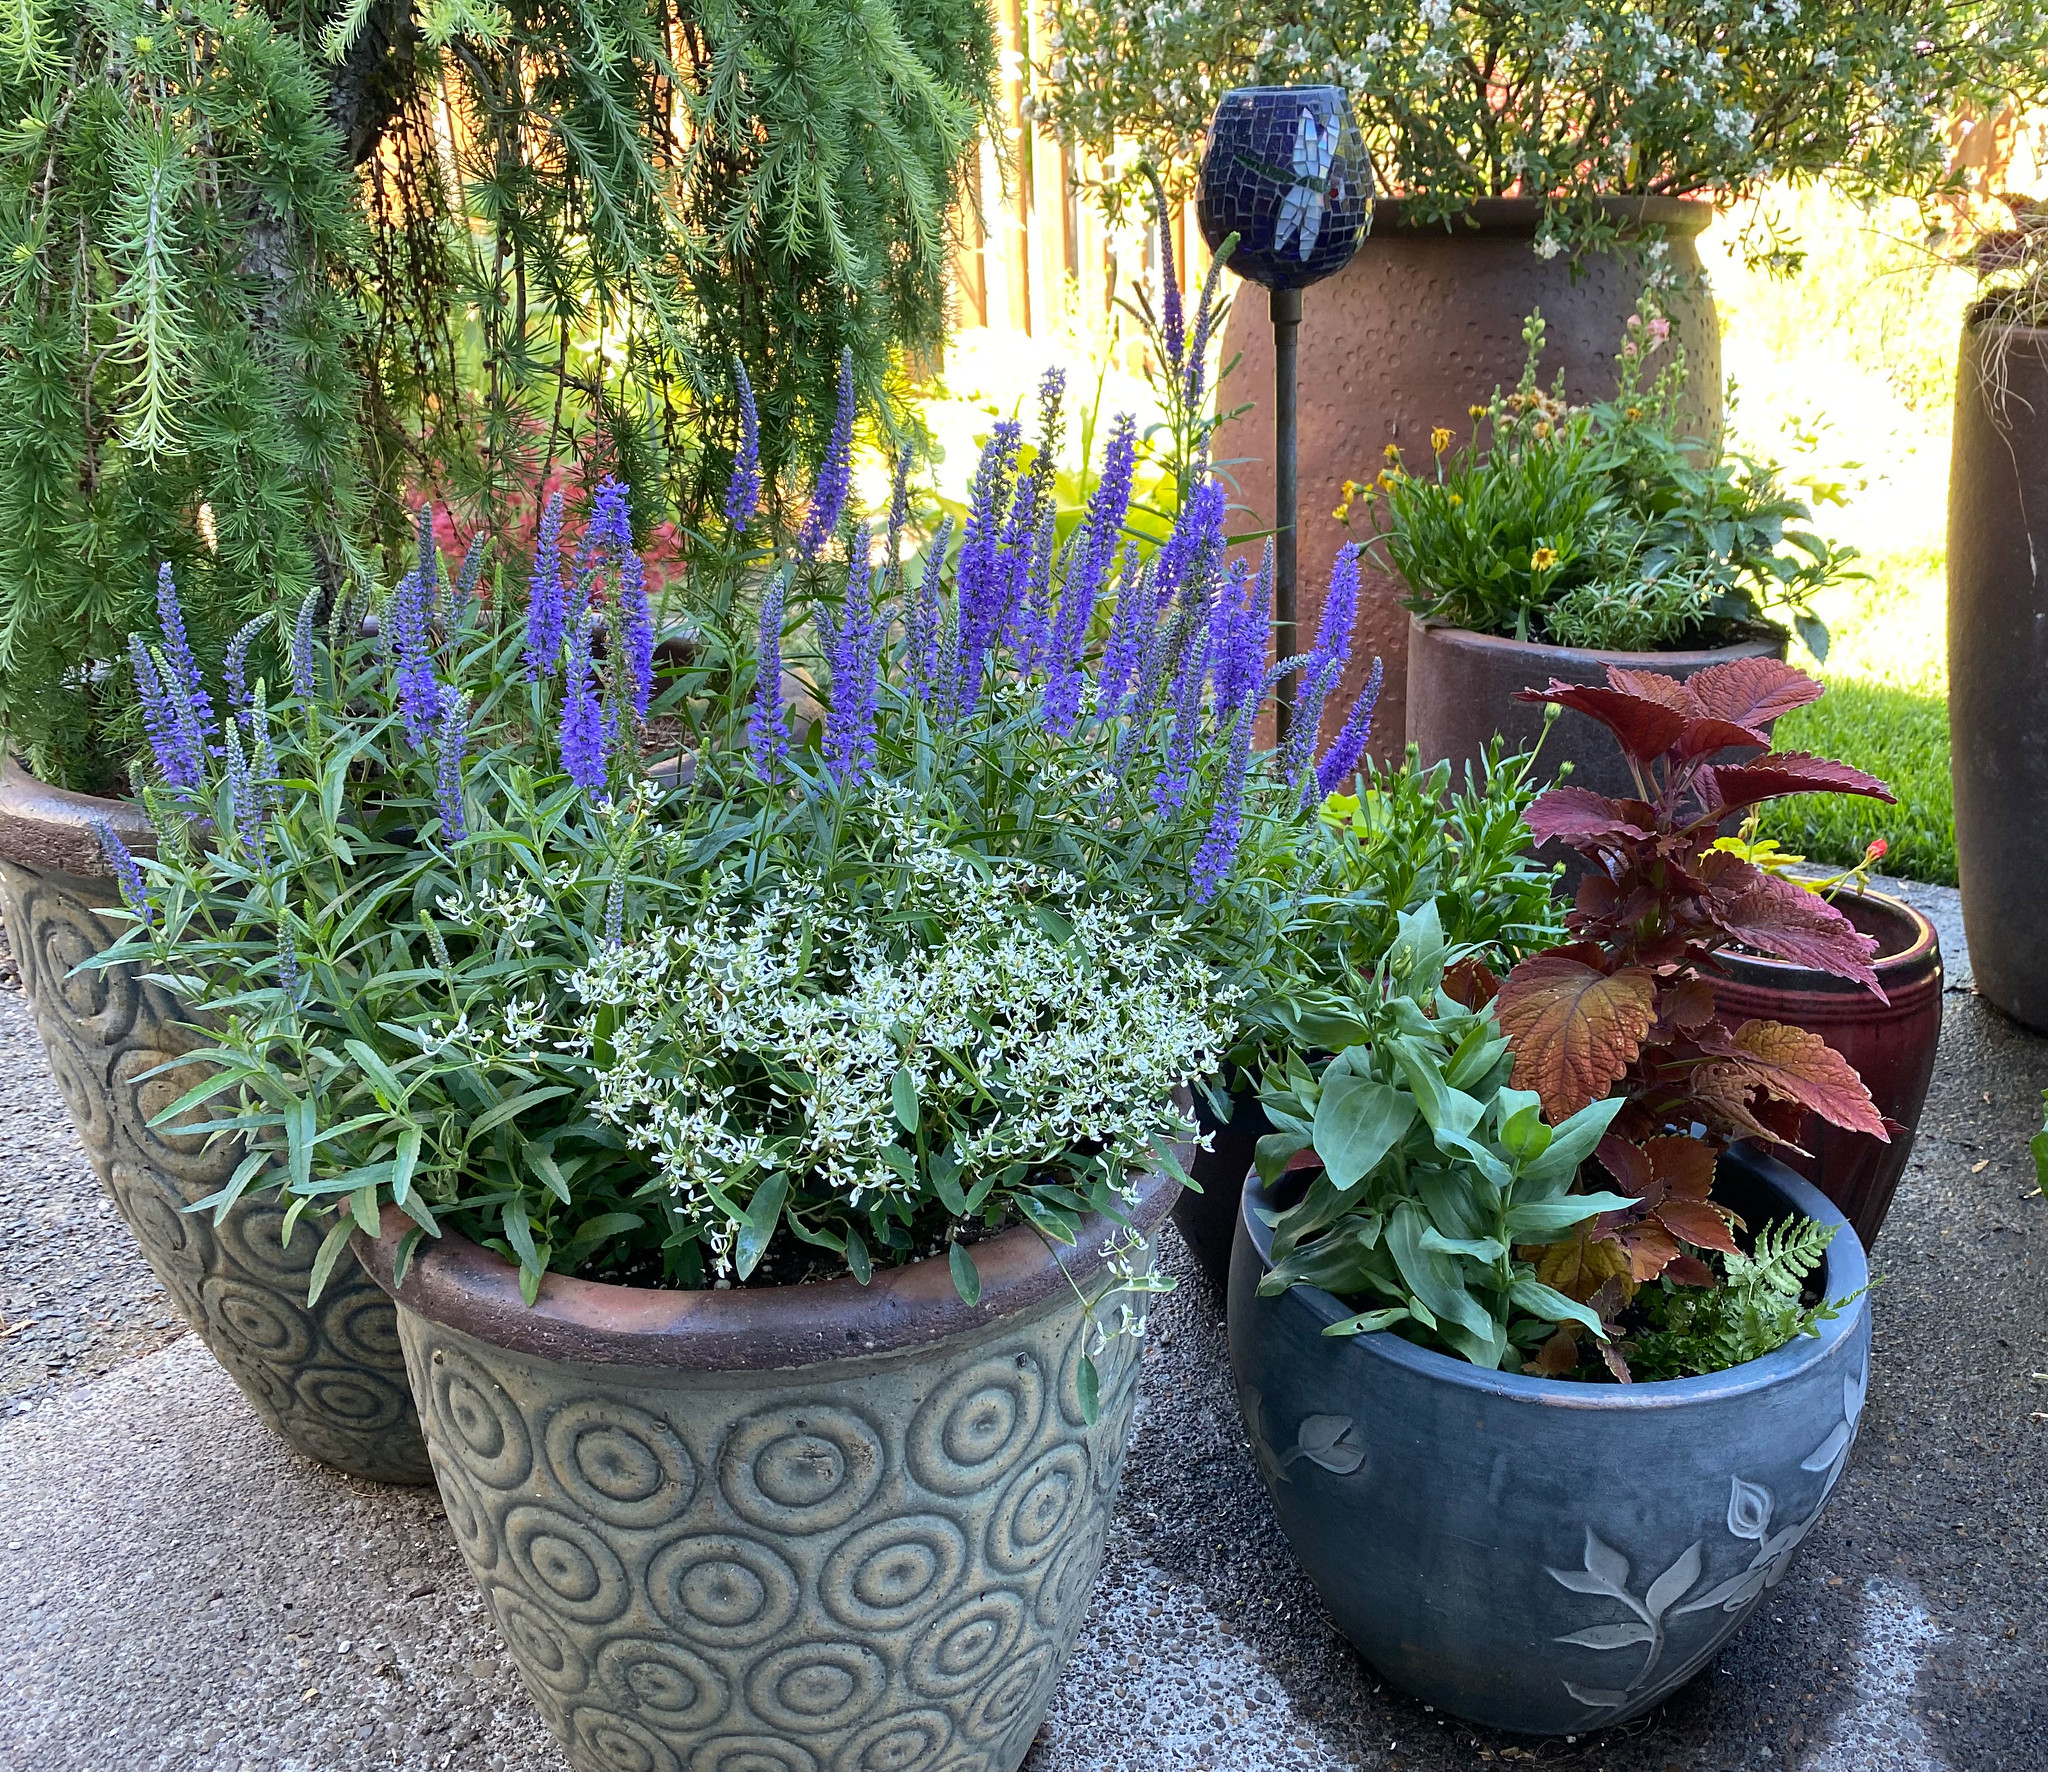 Tips for gardening in extreme heat